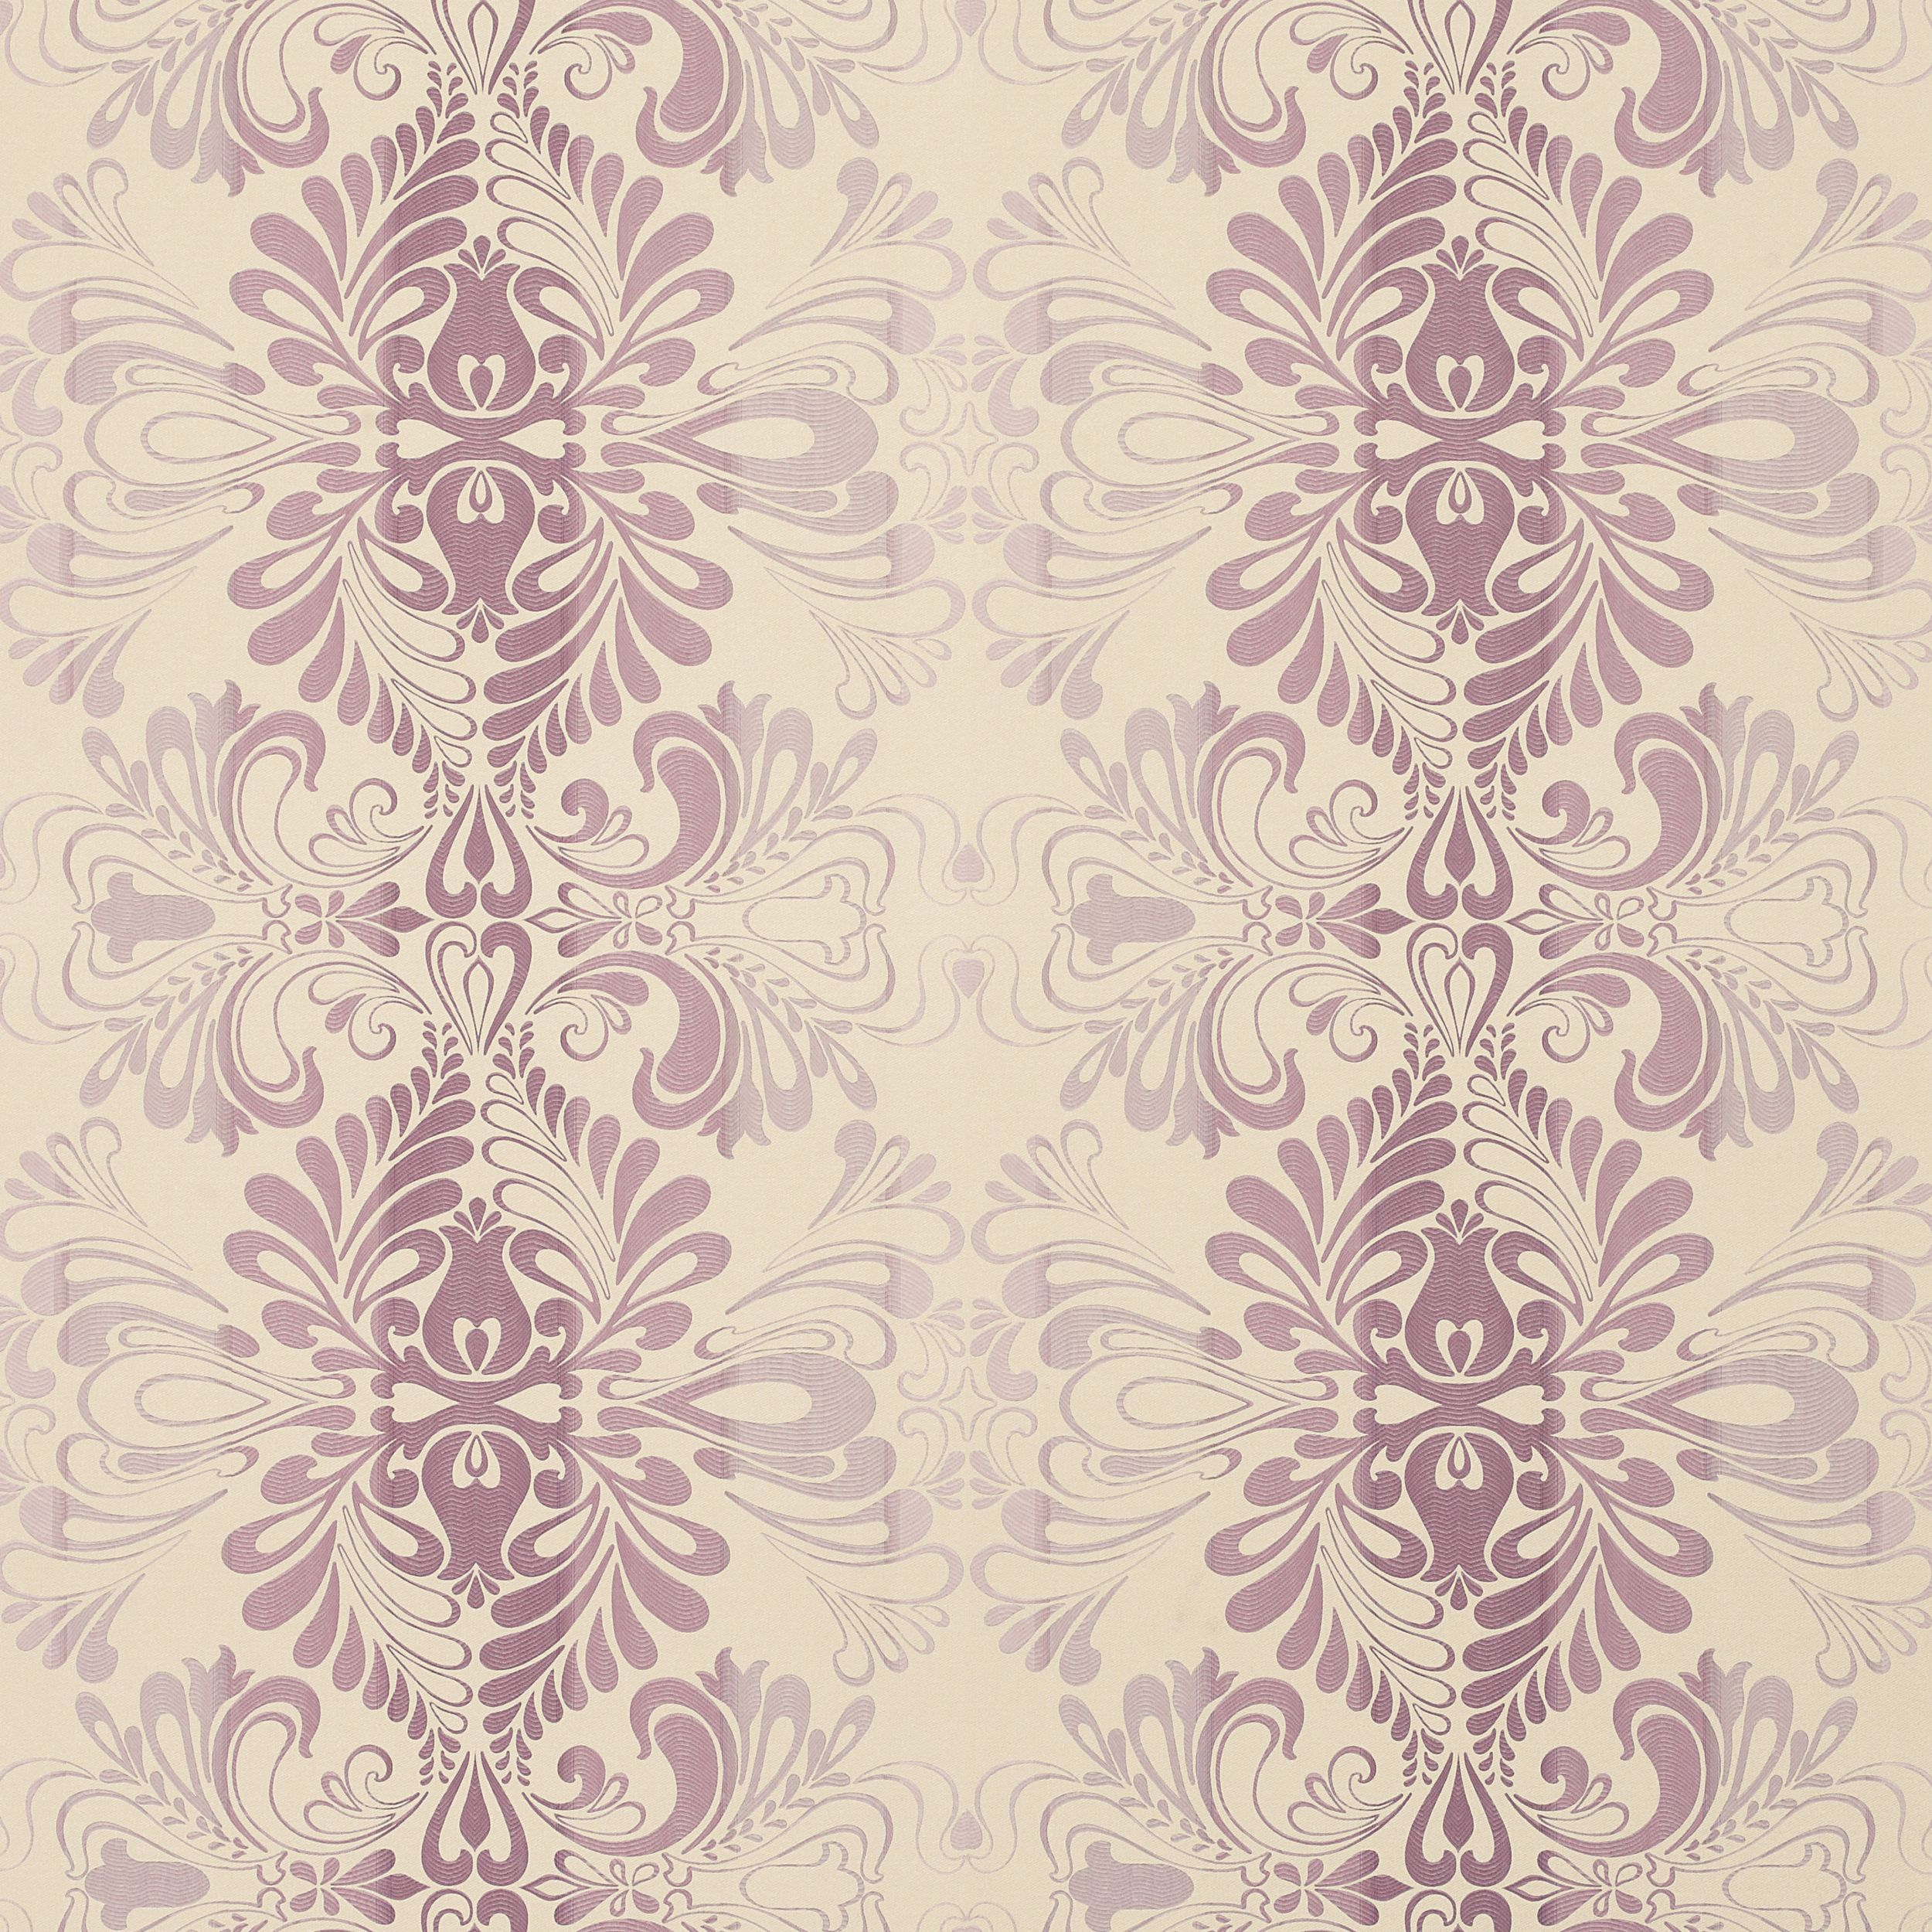 fitzroy amethyst damask wallpaper at laura ashley for the home